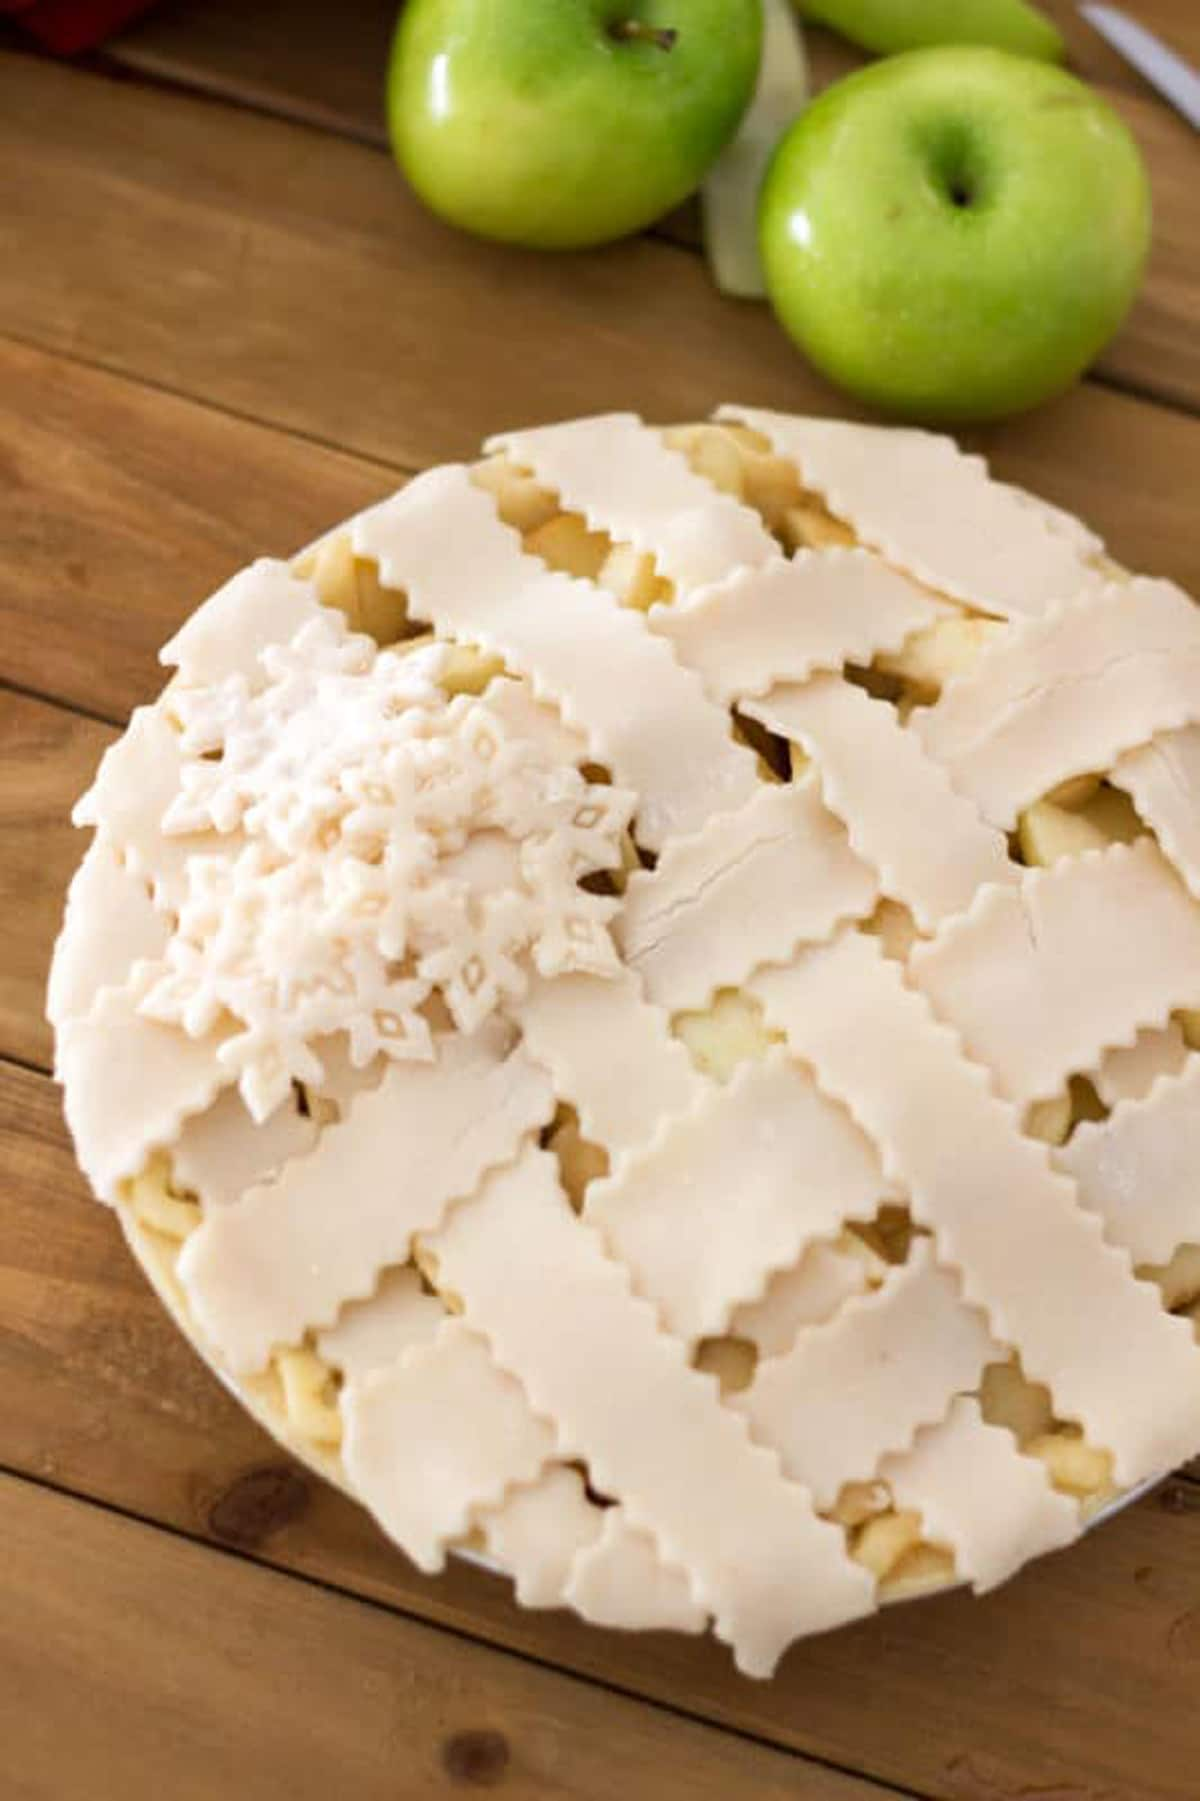 Homemade pie covered with lattice pie crust, 2 granny smith apples on table.